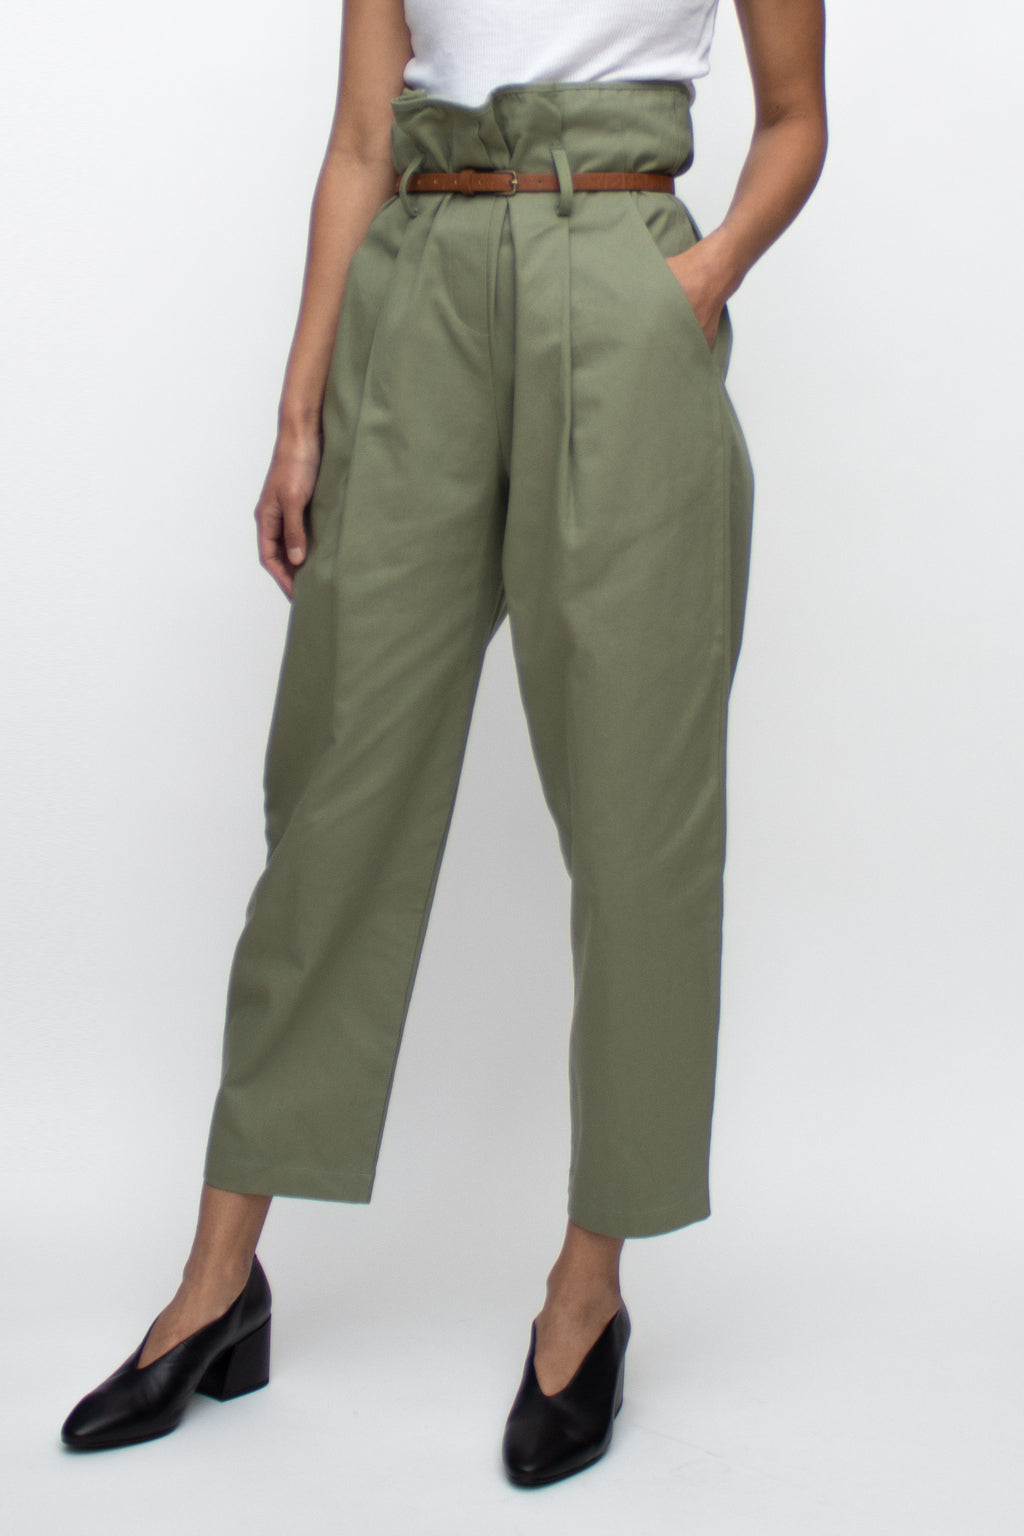 Olive High Waisted Pants  with Brown Belt